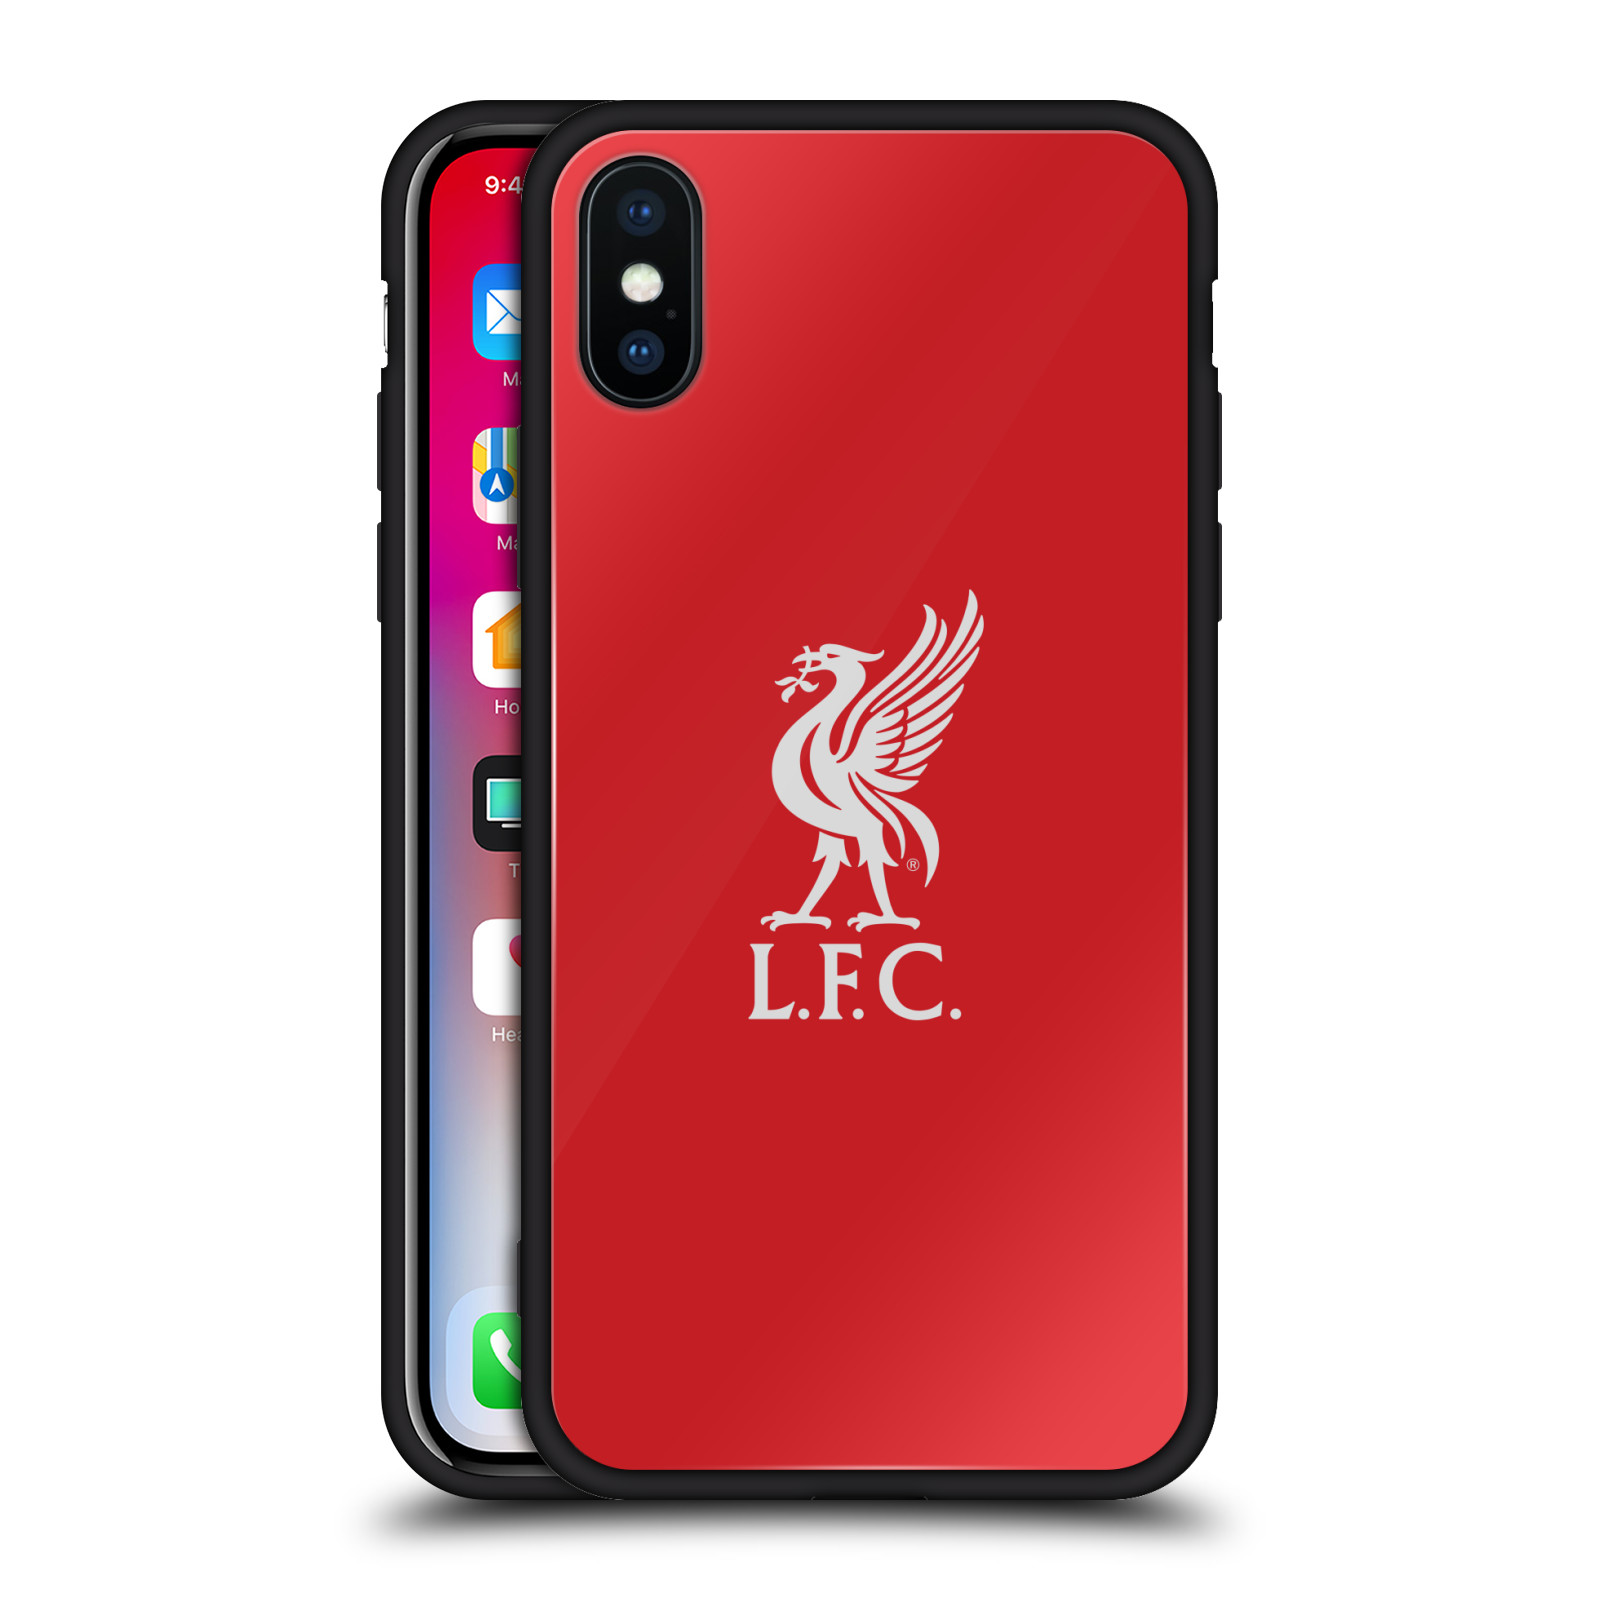 LIVERPOOL-FC-LFC-LIVER-BIRD-SCHWARZ-HULLE-AUS-HYBRID-GLASS-FUR-iPHONE-HANDYS